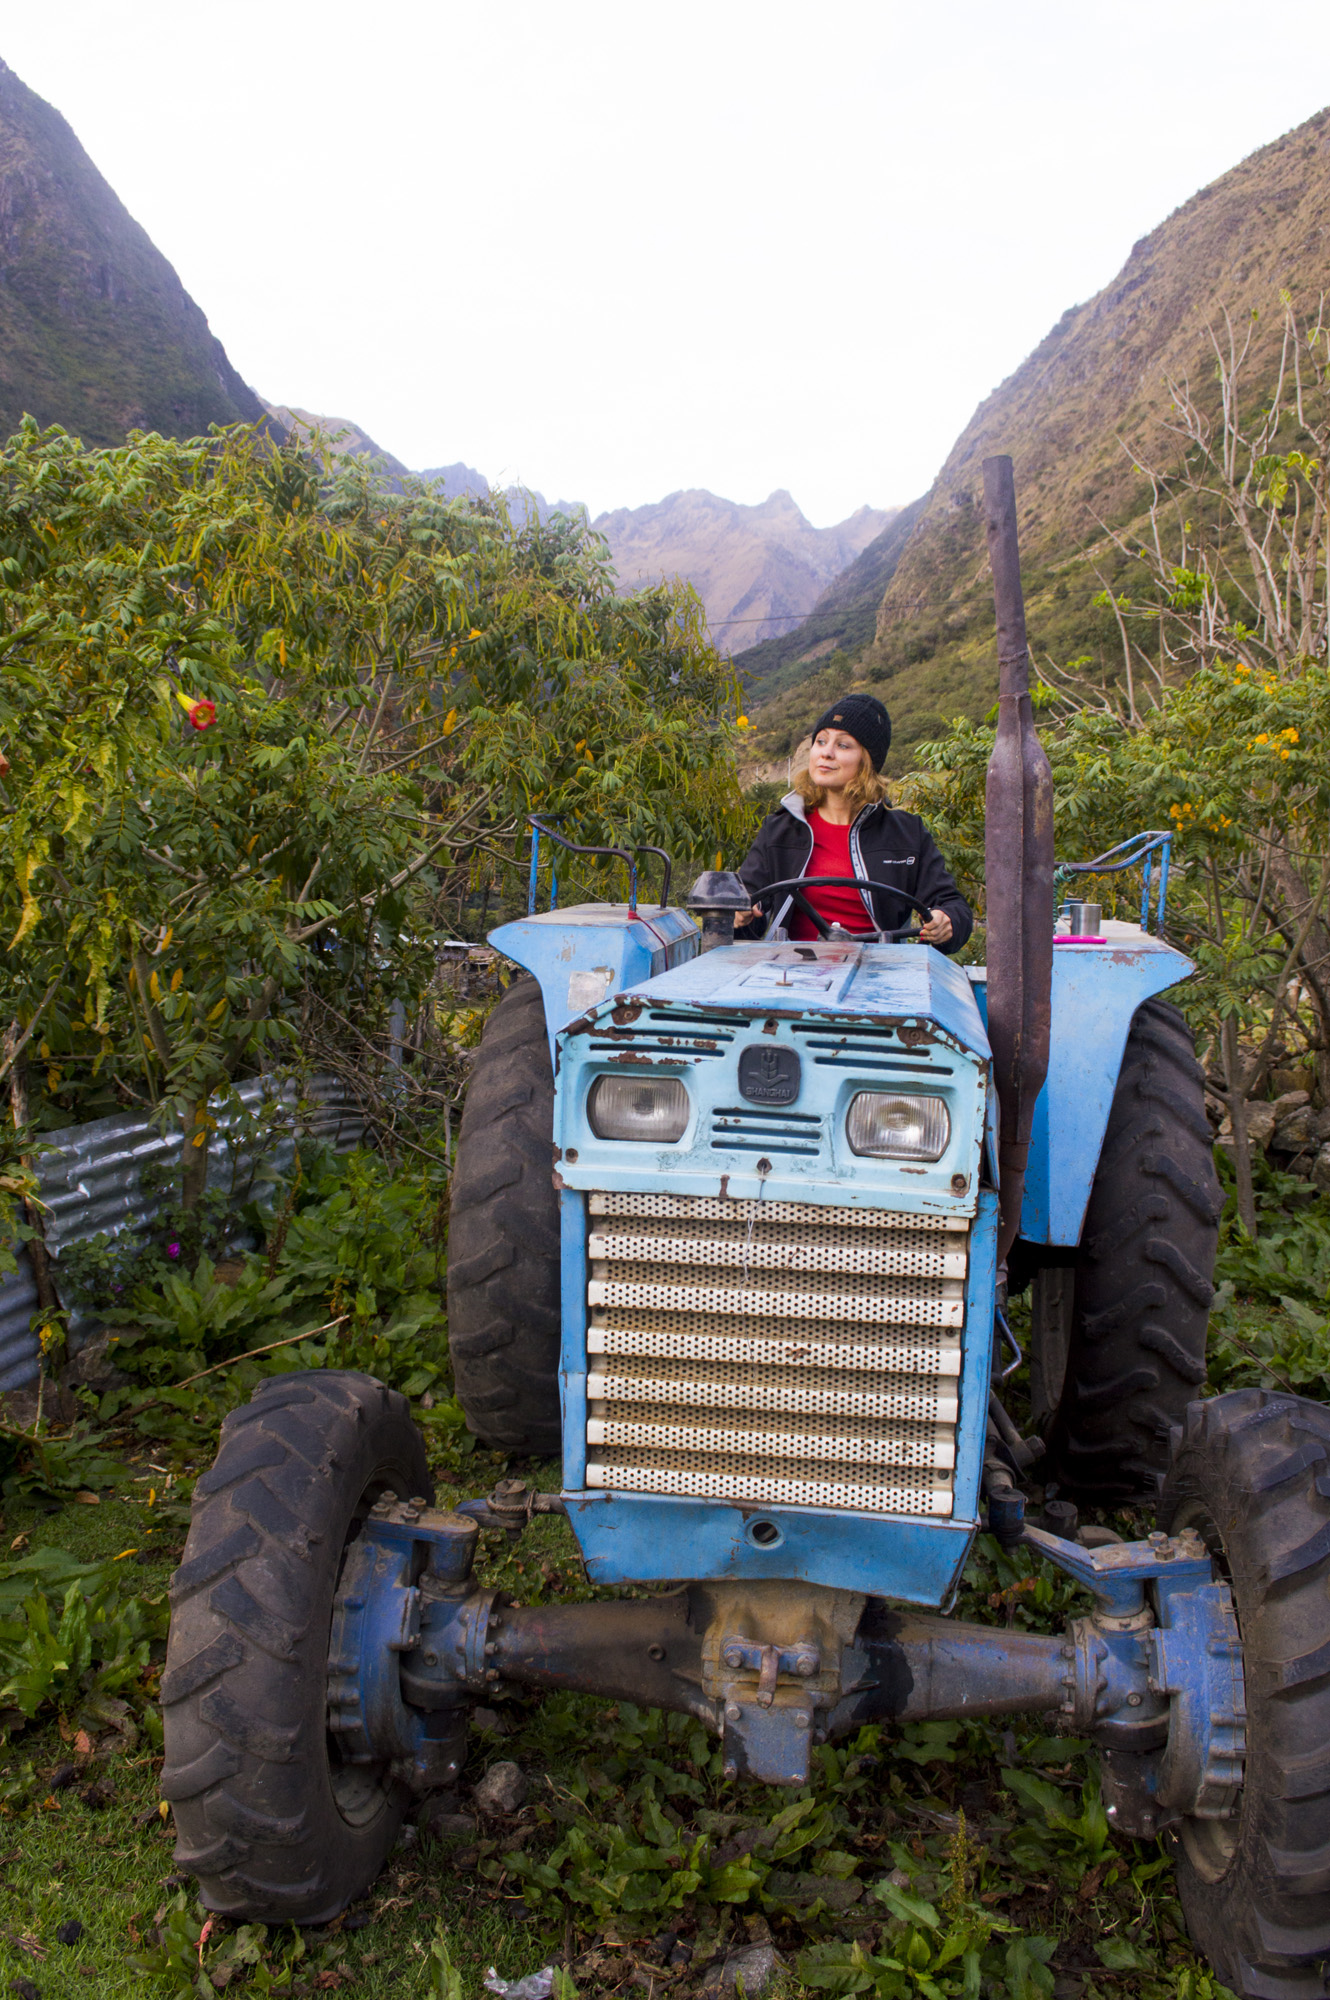 Inca 2 kris on tractor.jpg